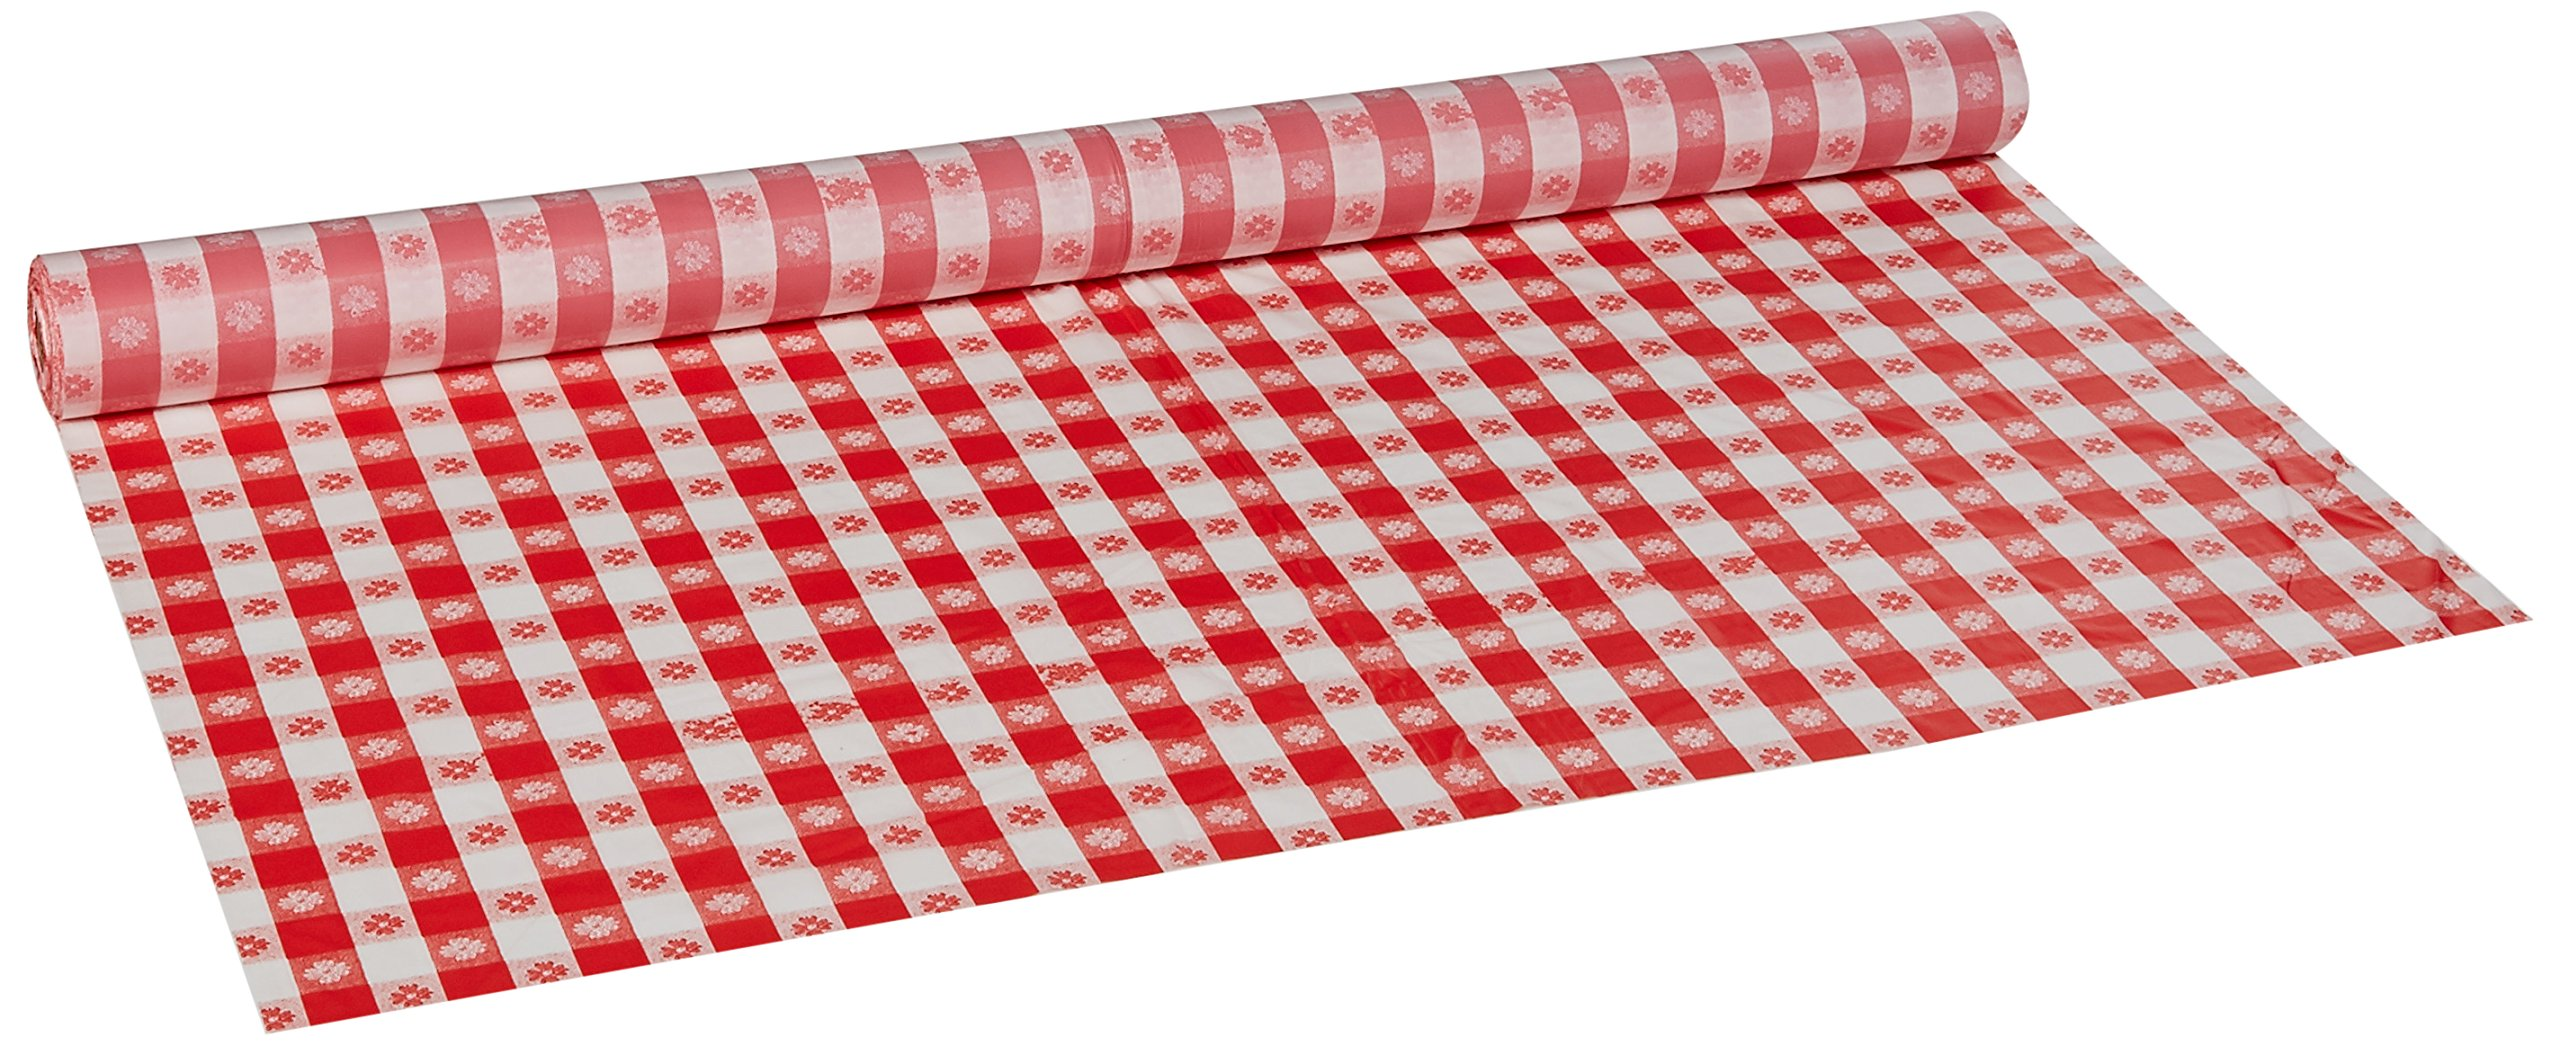 Hoffmaster 114001 Plastic Tablecover Roll, 300' Length x 40'' Width, Red Gingham